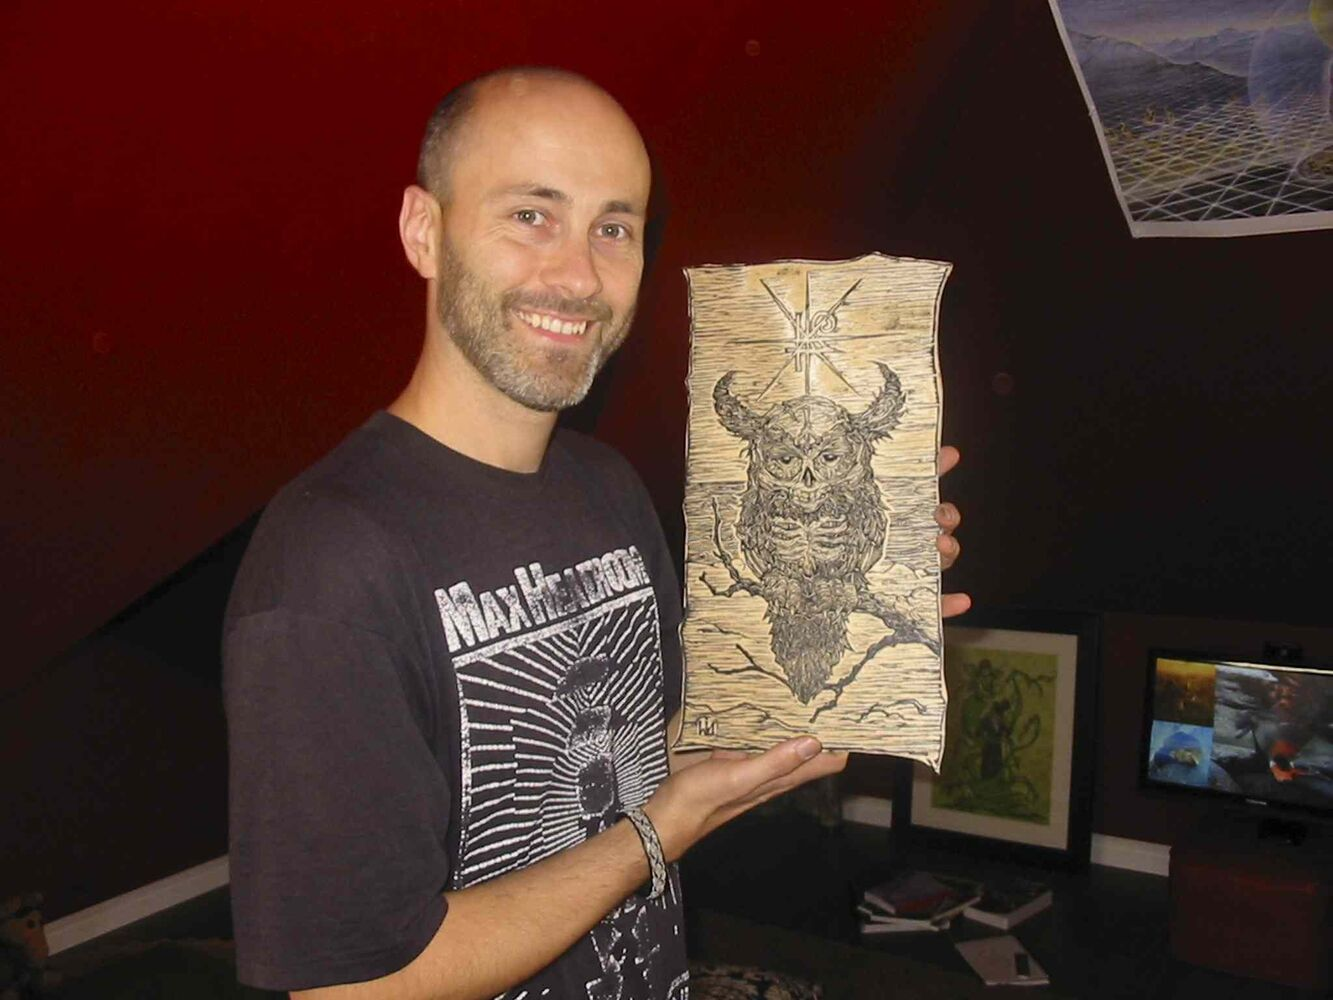 Darcy J. Watt with a woodcut of a mythic creature. (Bill Redekop / Winnipeg Free Press)